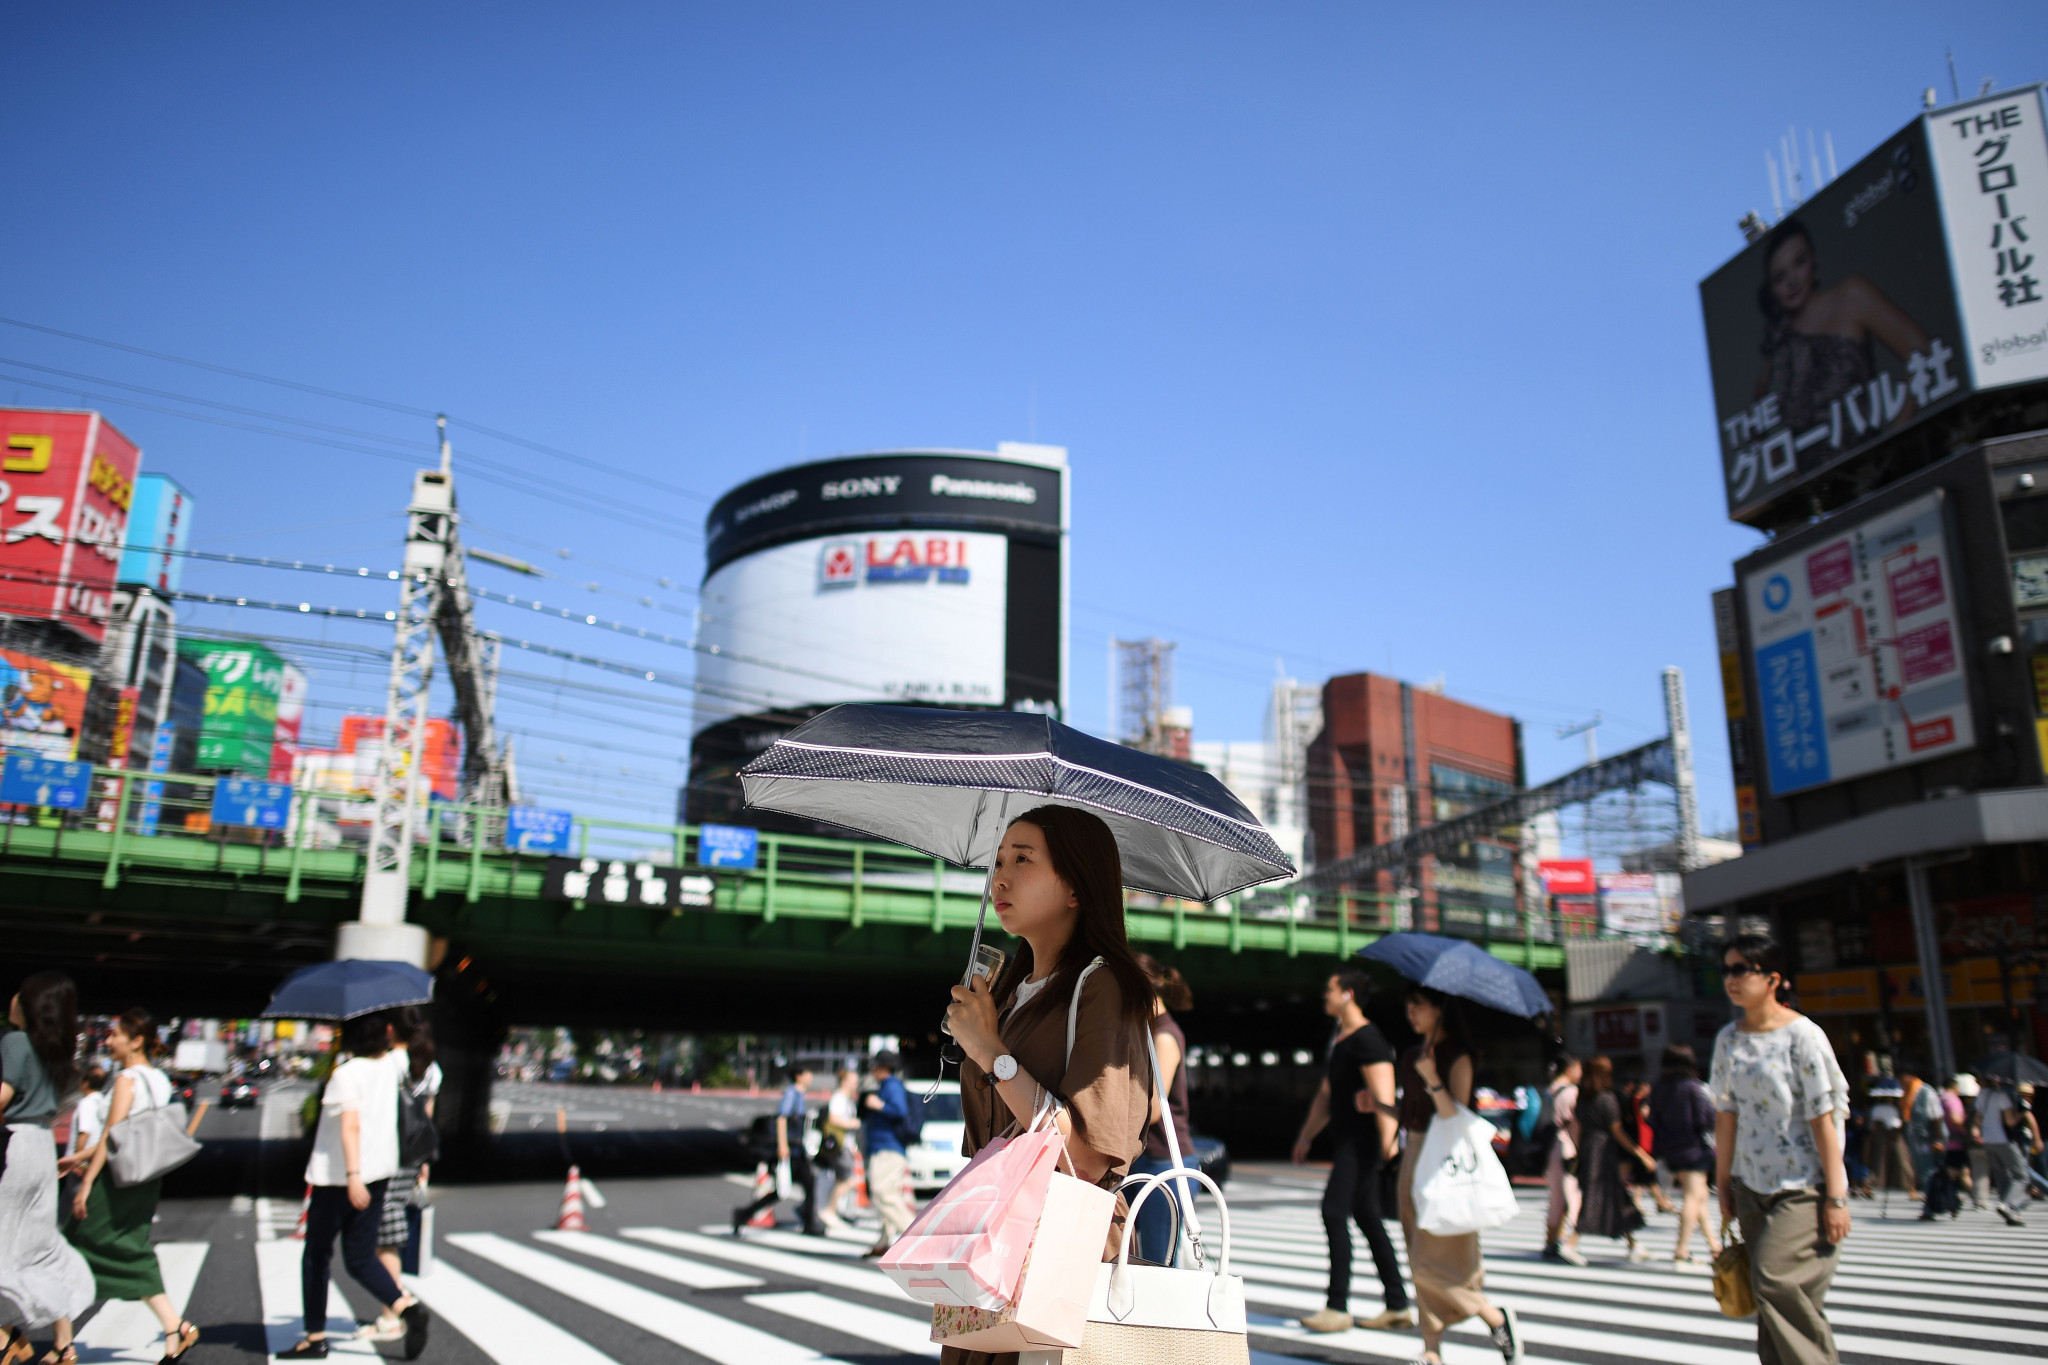 The high temperatures in Tokyo were discussed at the Seminar ©Getty Images